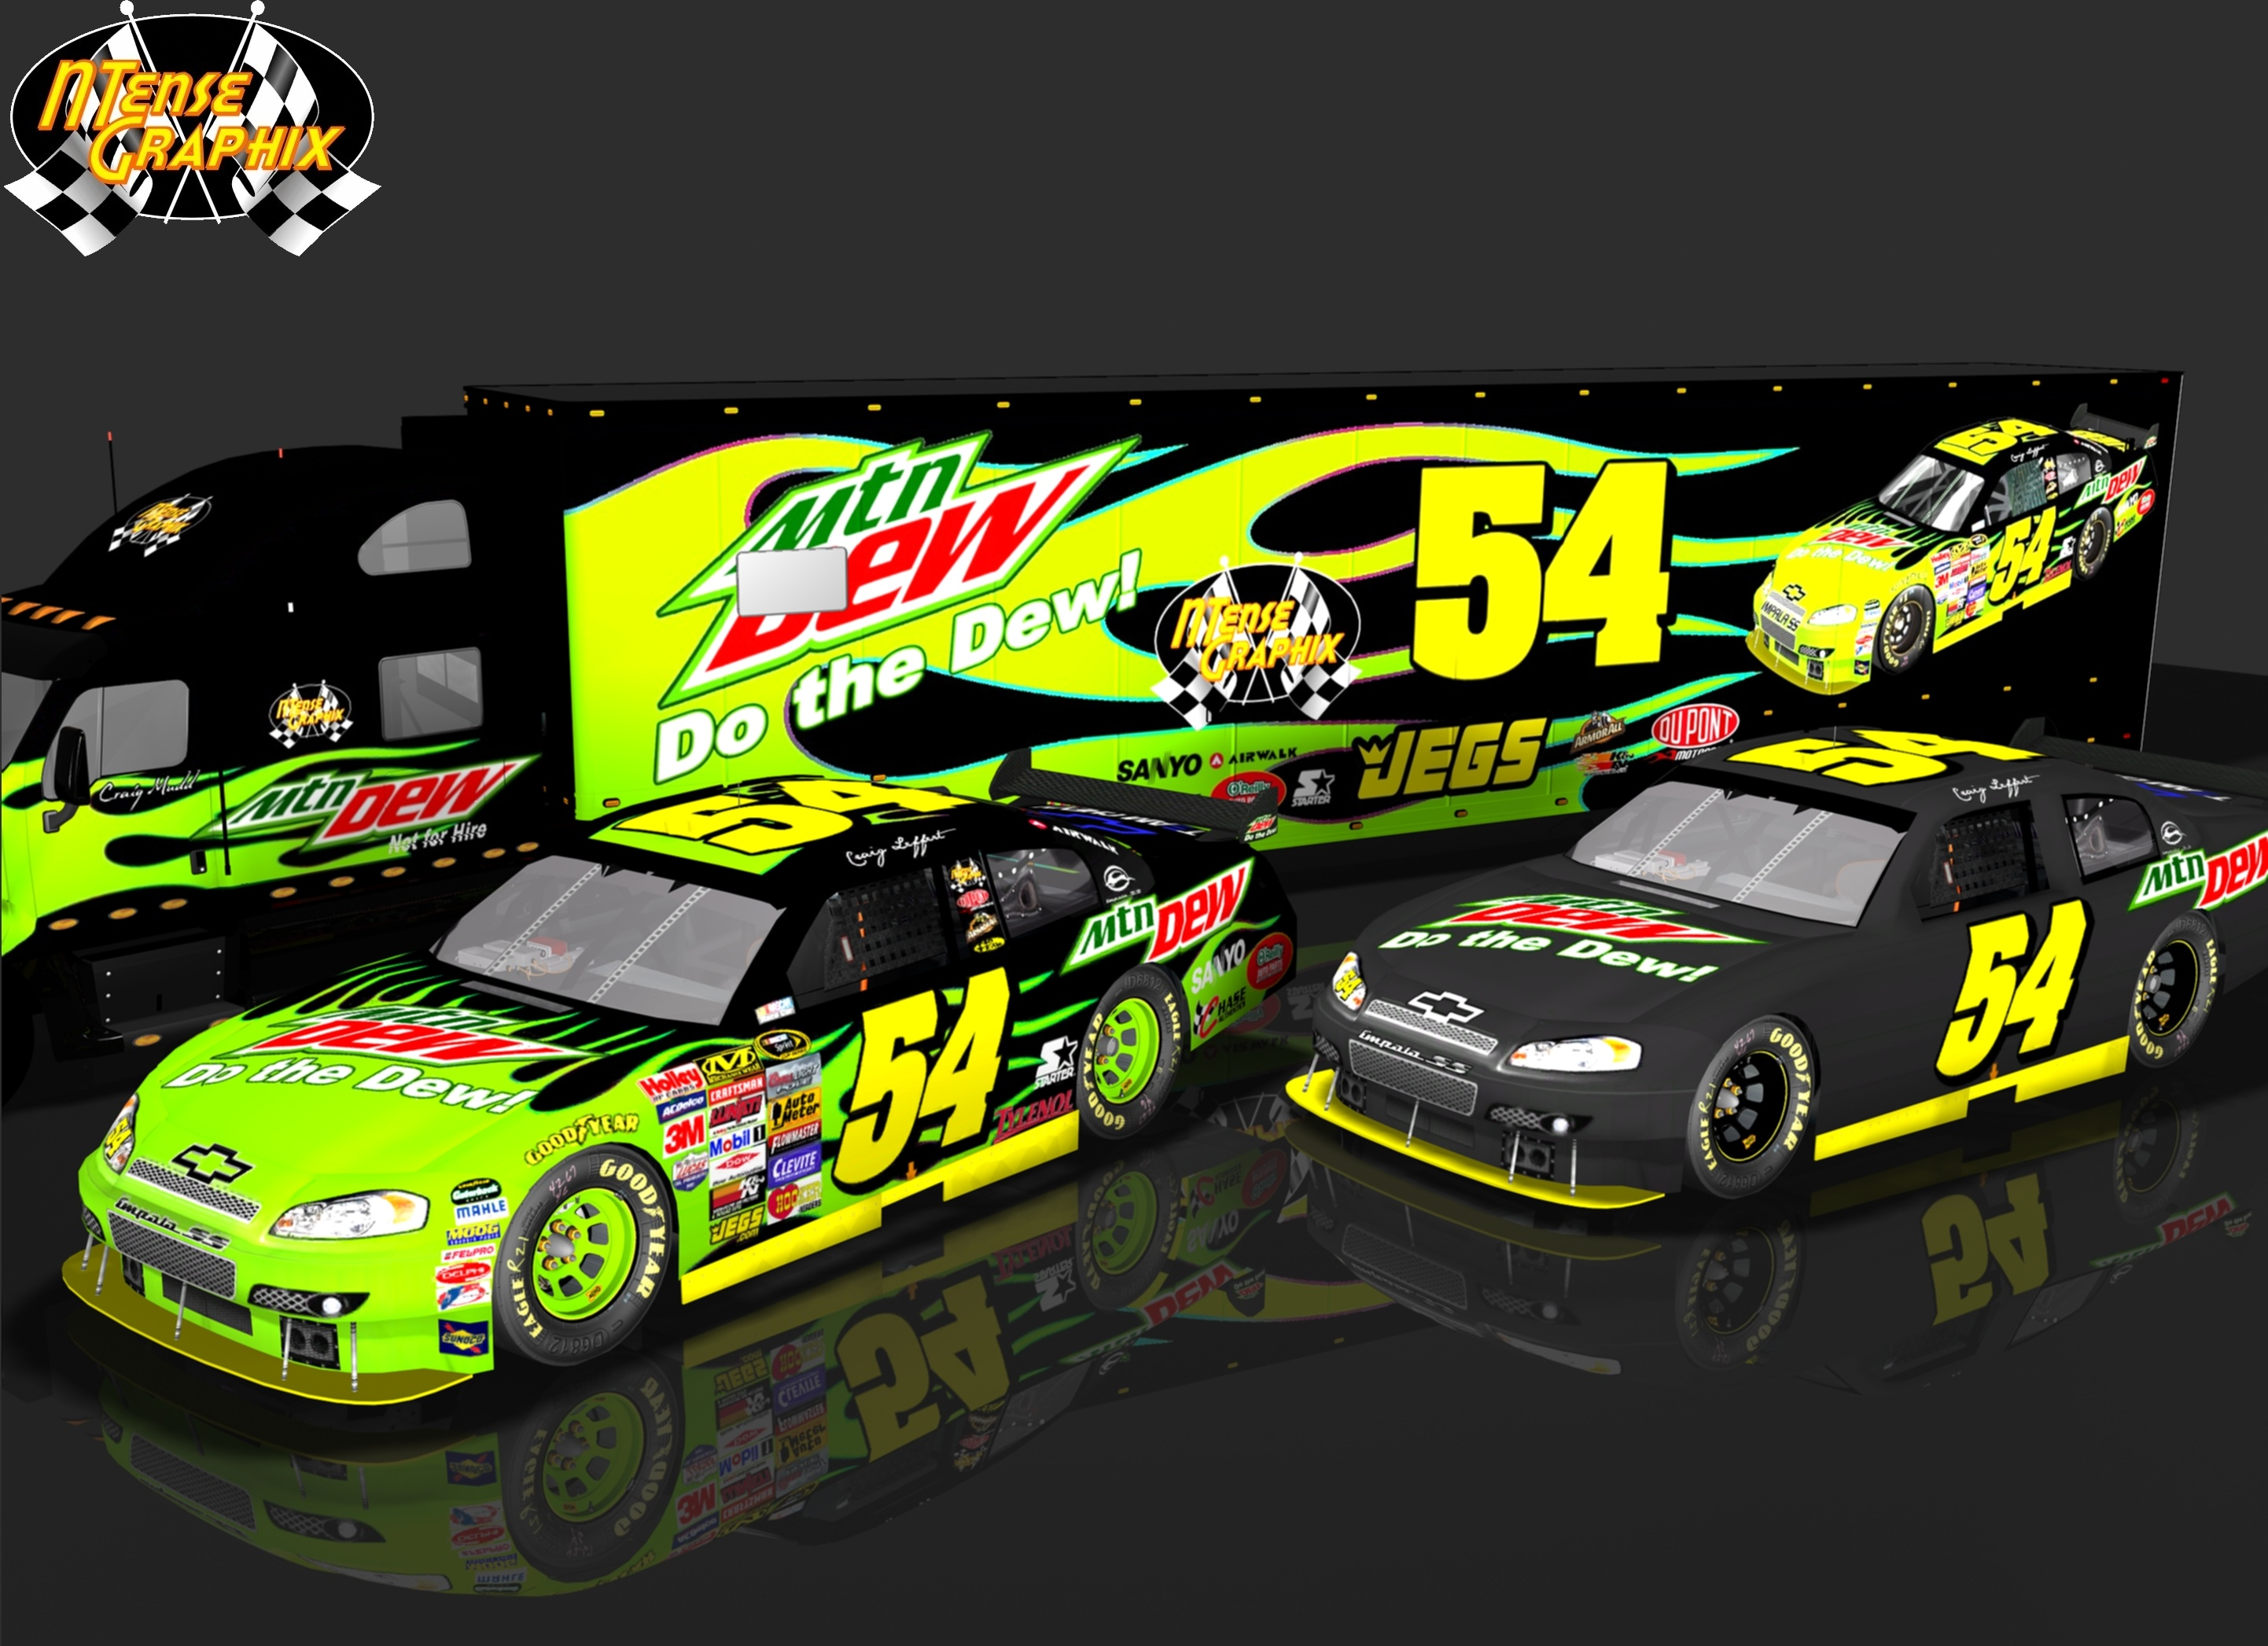 50 Nascar Hd Wallpapers On Wallpapersafari: [49+] NASCAR HD Wallpaper On WallpaperSafari